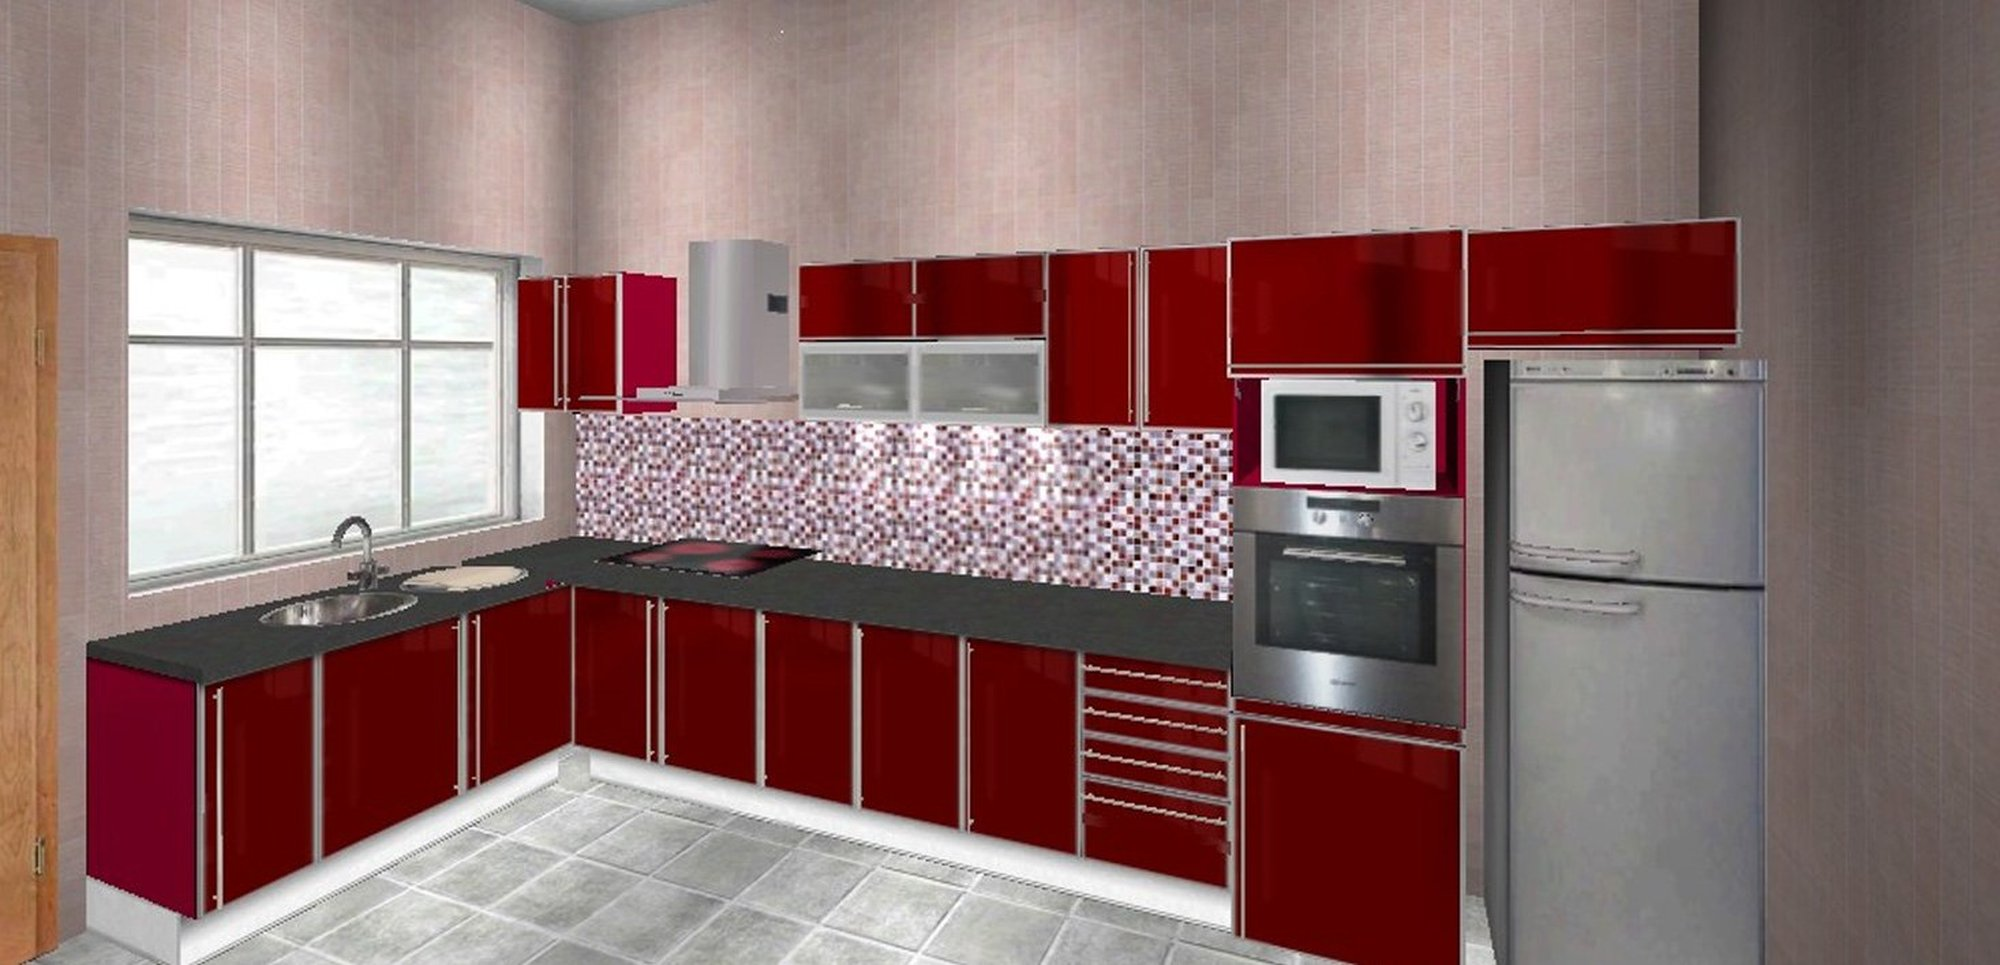 Aluminium Kitchen Cabinets Qatar Local Businesses Product By Kitchens Show